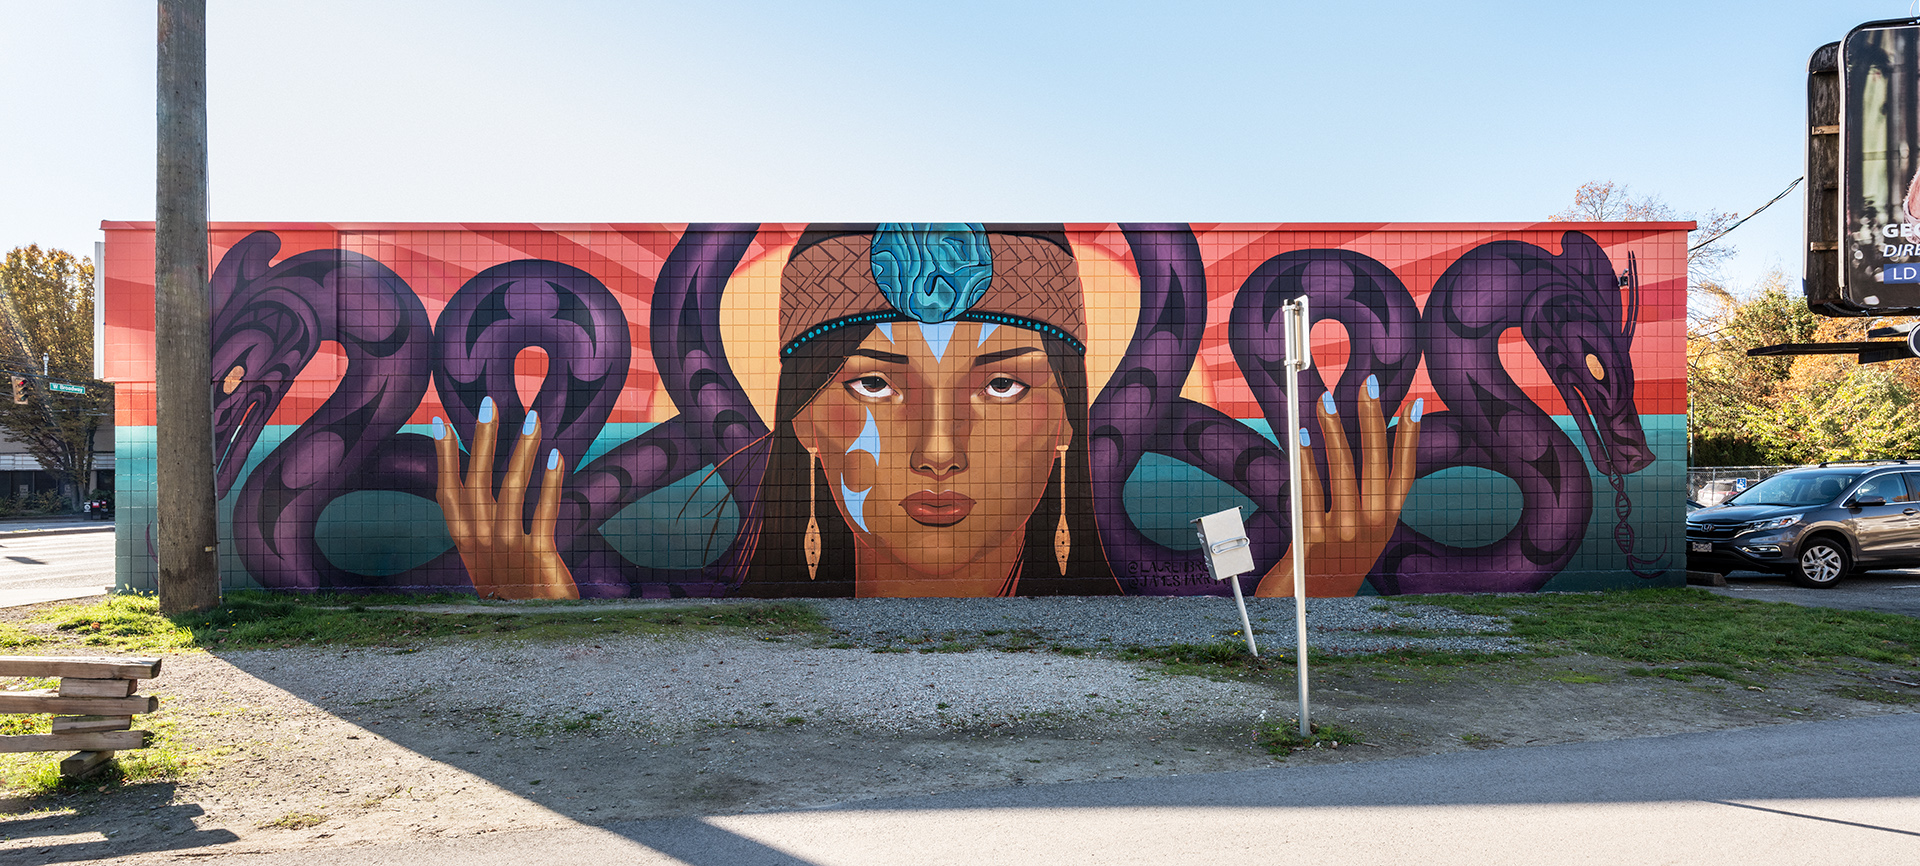 ENG - SA - IGMP - Murals - 2018 - 2097 W_adway - James Harry and Lauren Brevner - Photo credit Rachel Topham - low res 2.jpg